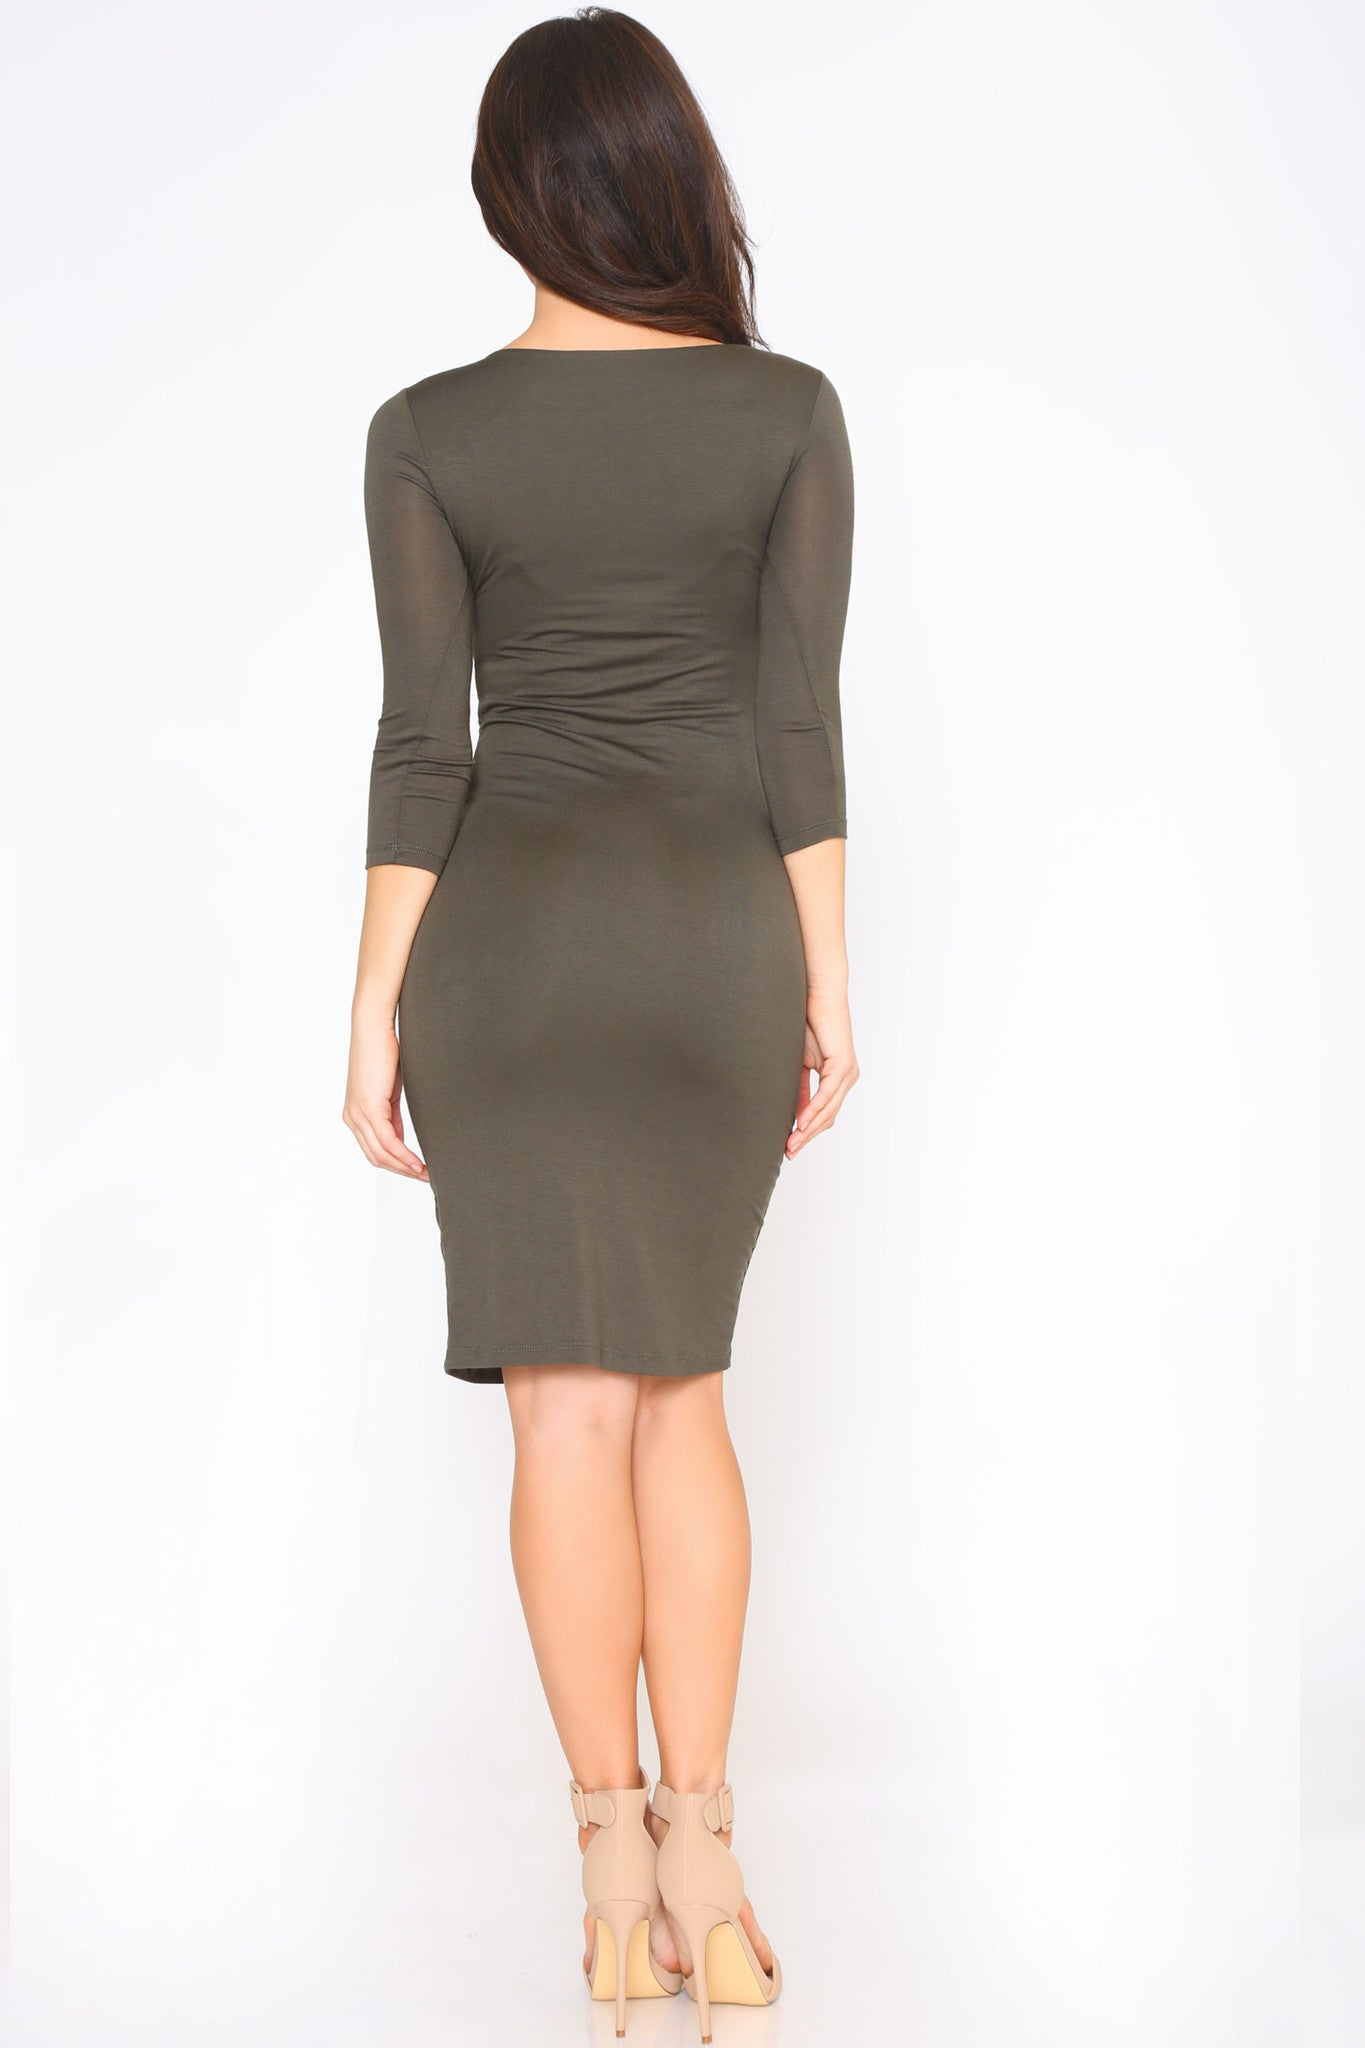 ARI DRESS - Glam Envy - 3